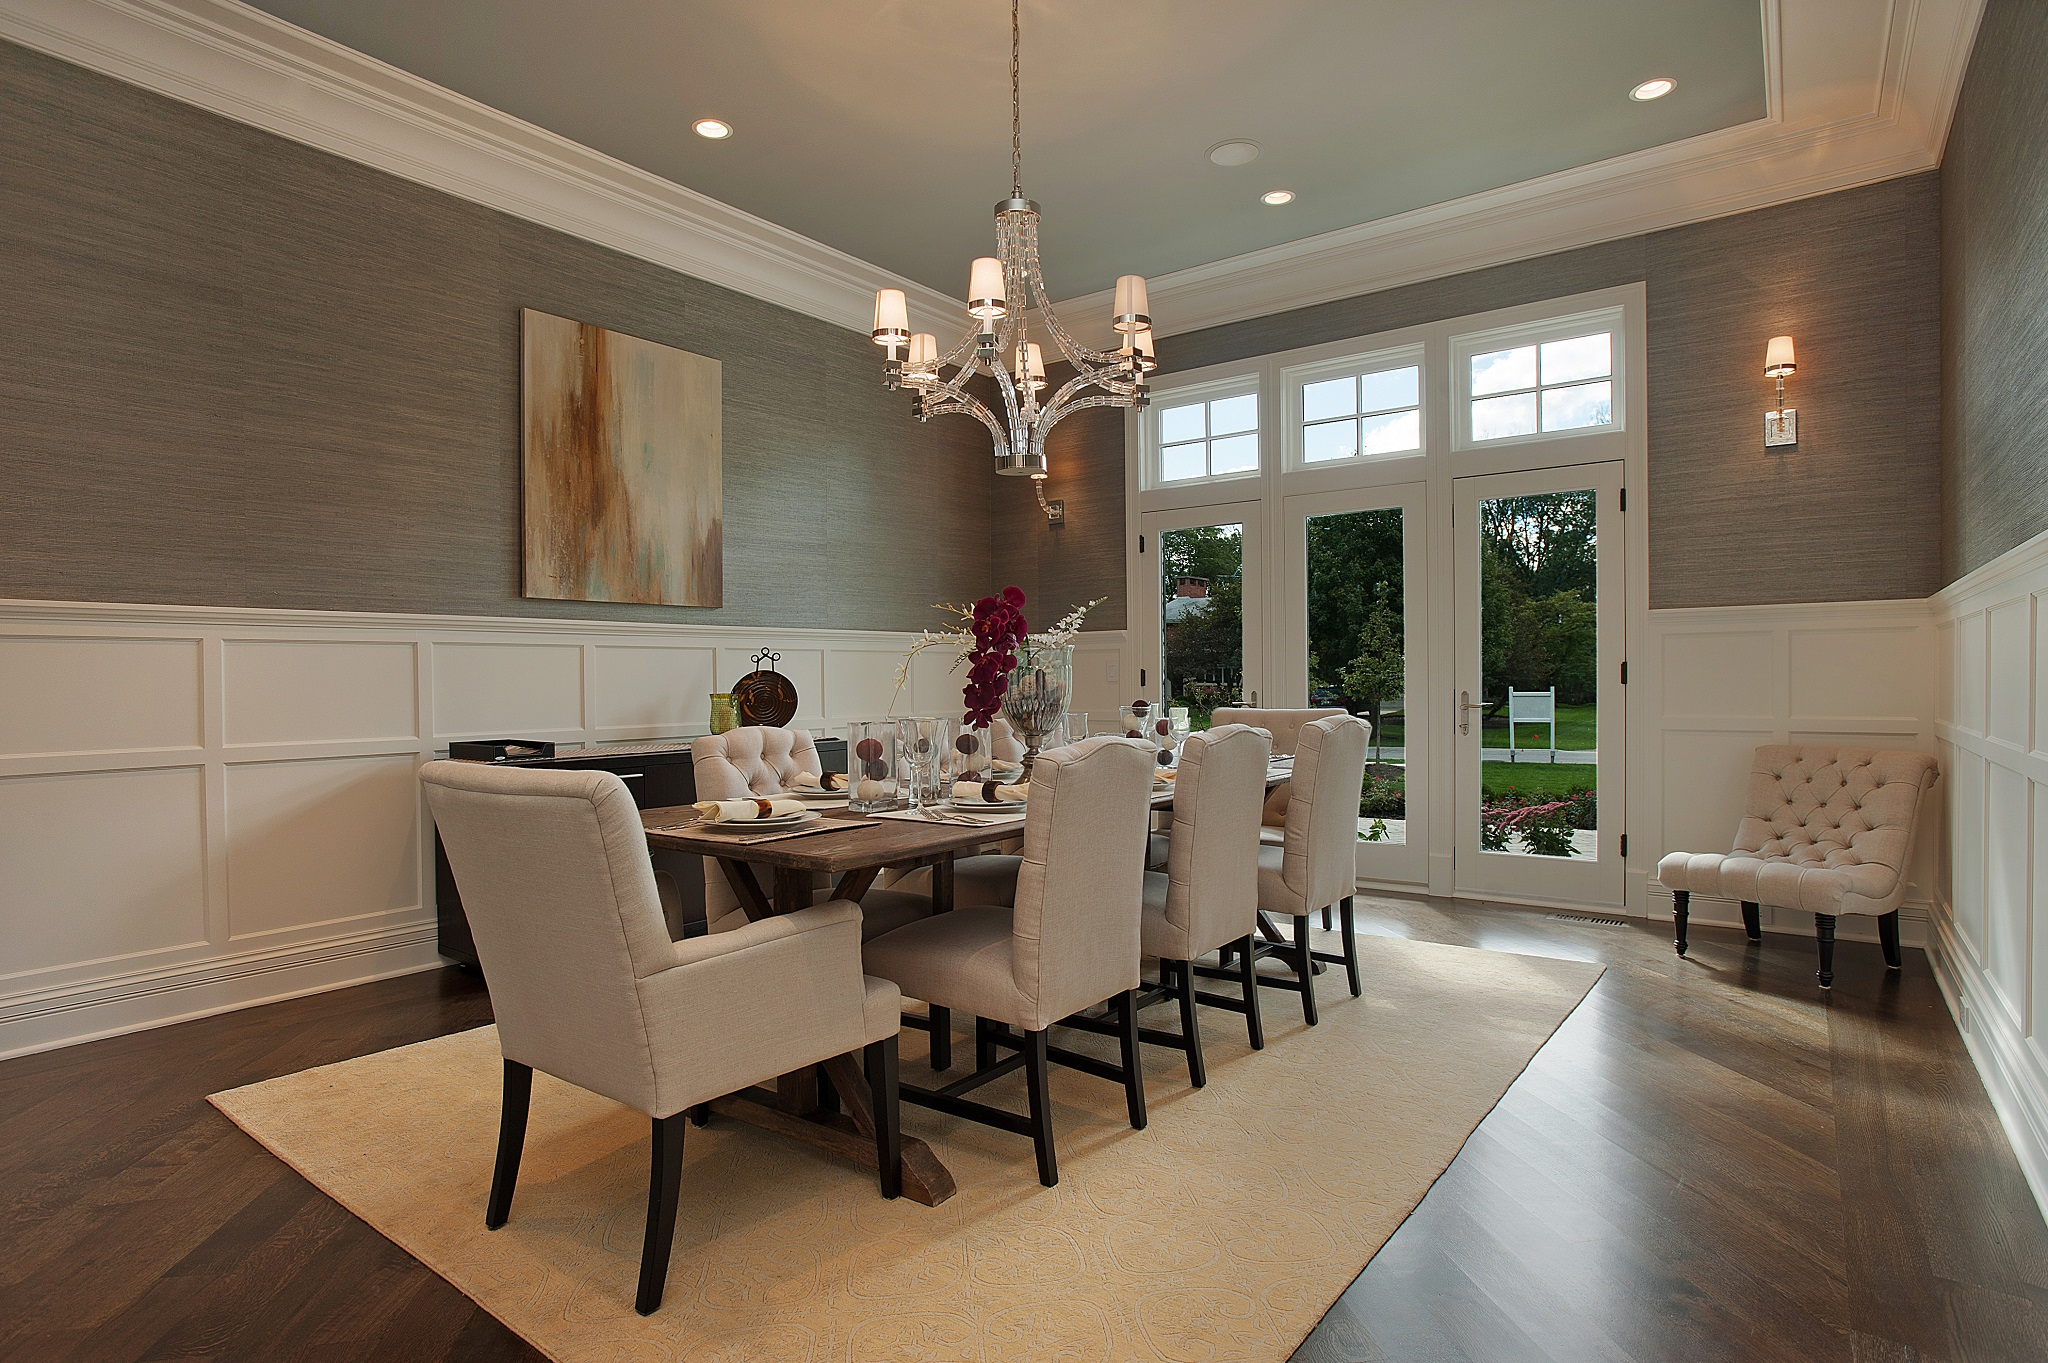 Best Formal Dining Room Sets For Home Design: Cozy Formal Dining Room Sets  With Buffet